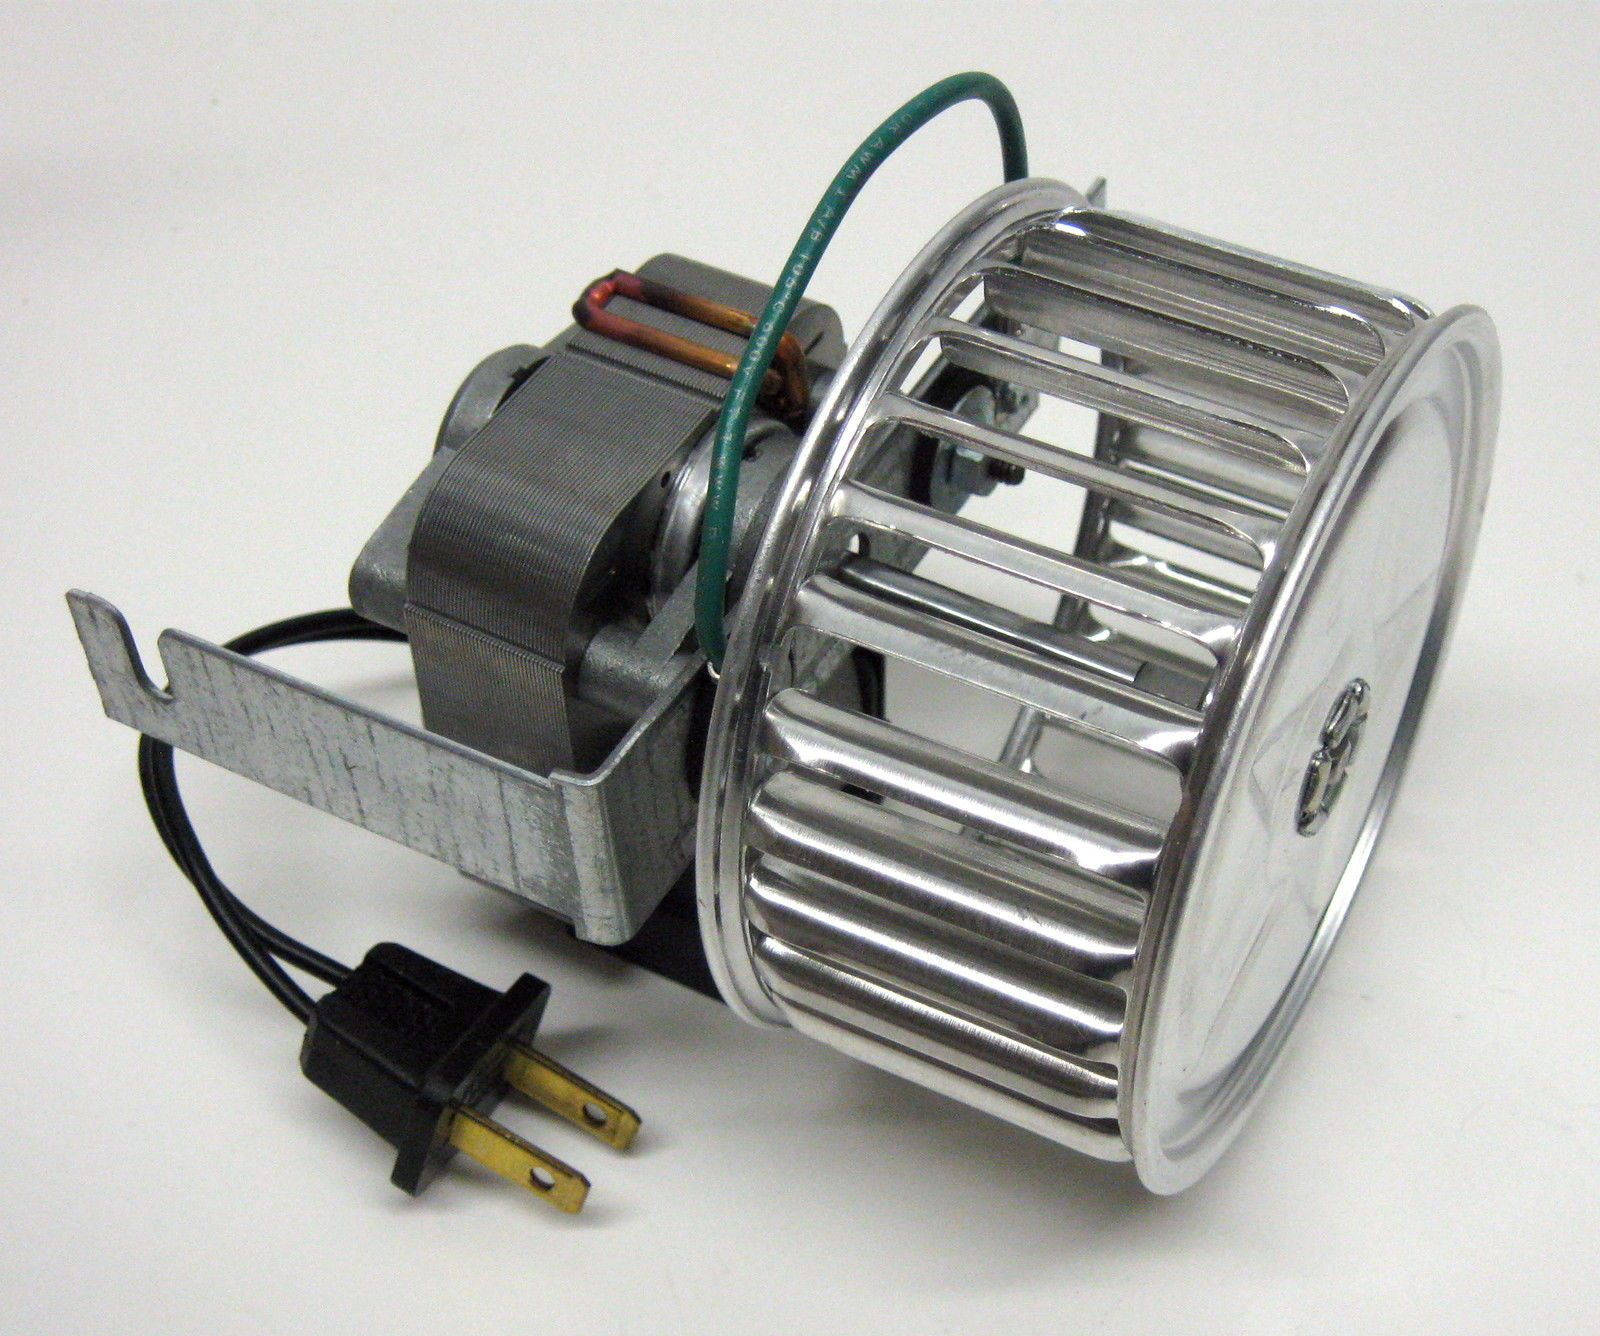 82229000 Genuine Nutone Broan Oem Vent Bath Fan Motor For